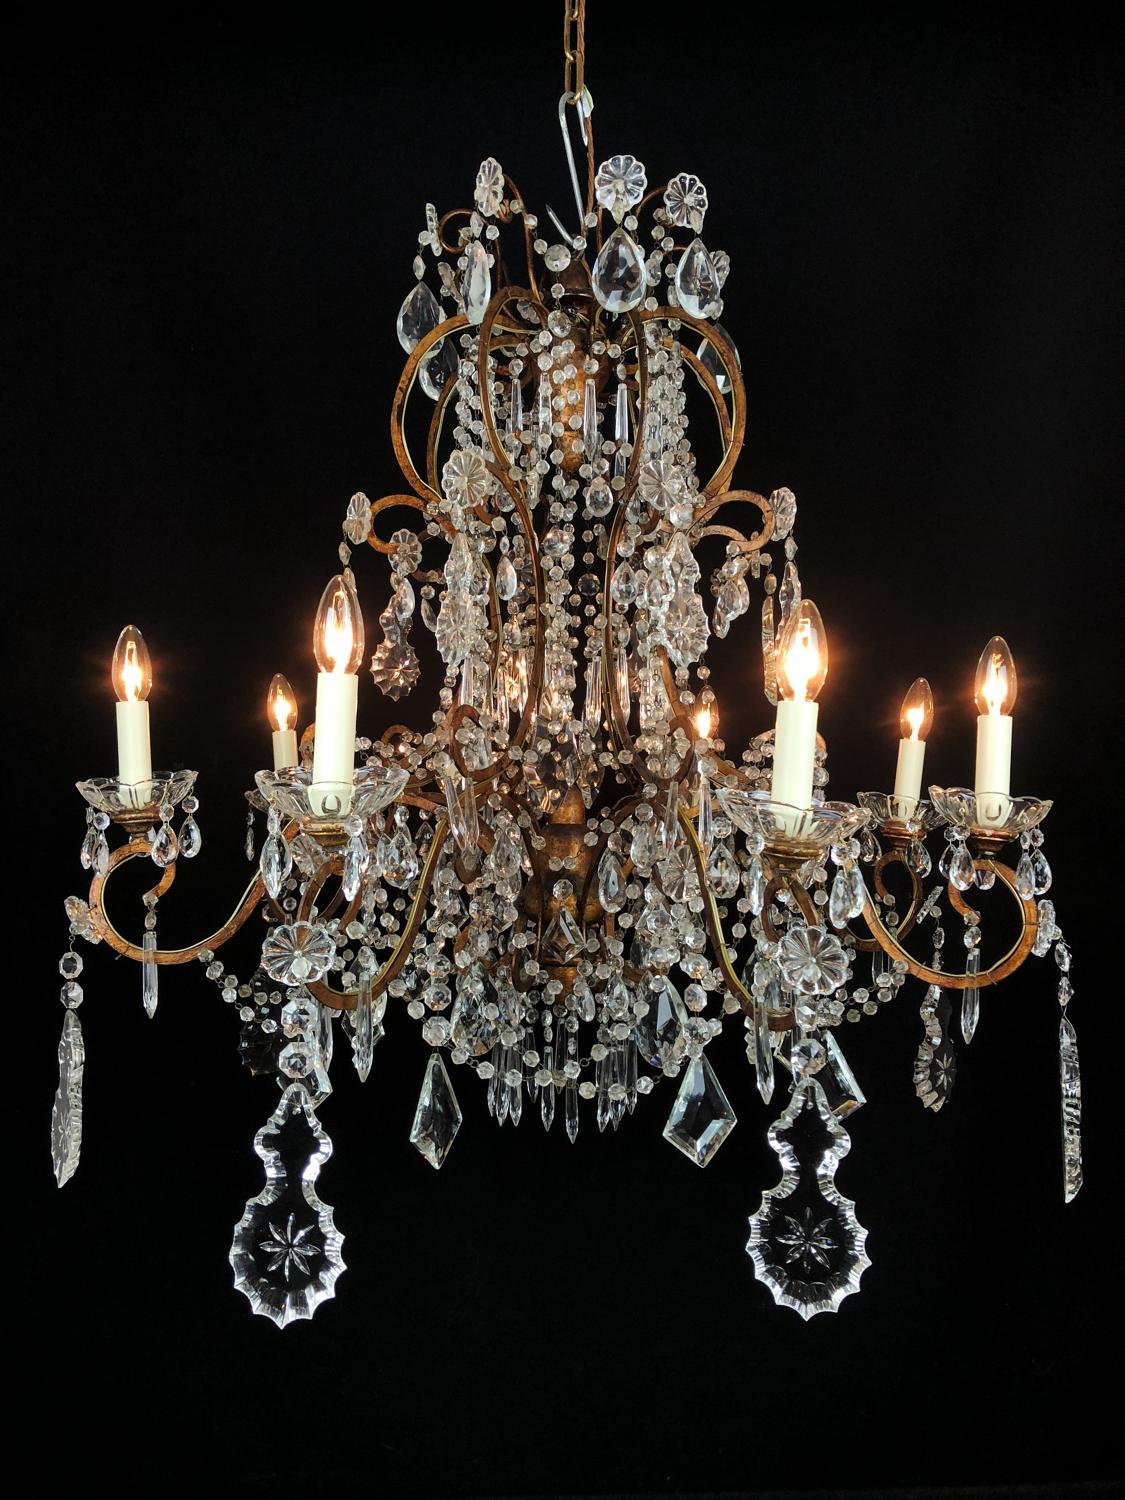 An unusual Italian Chandelier